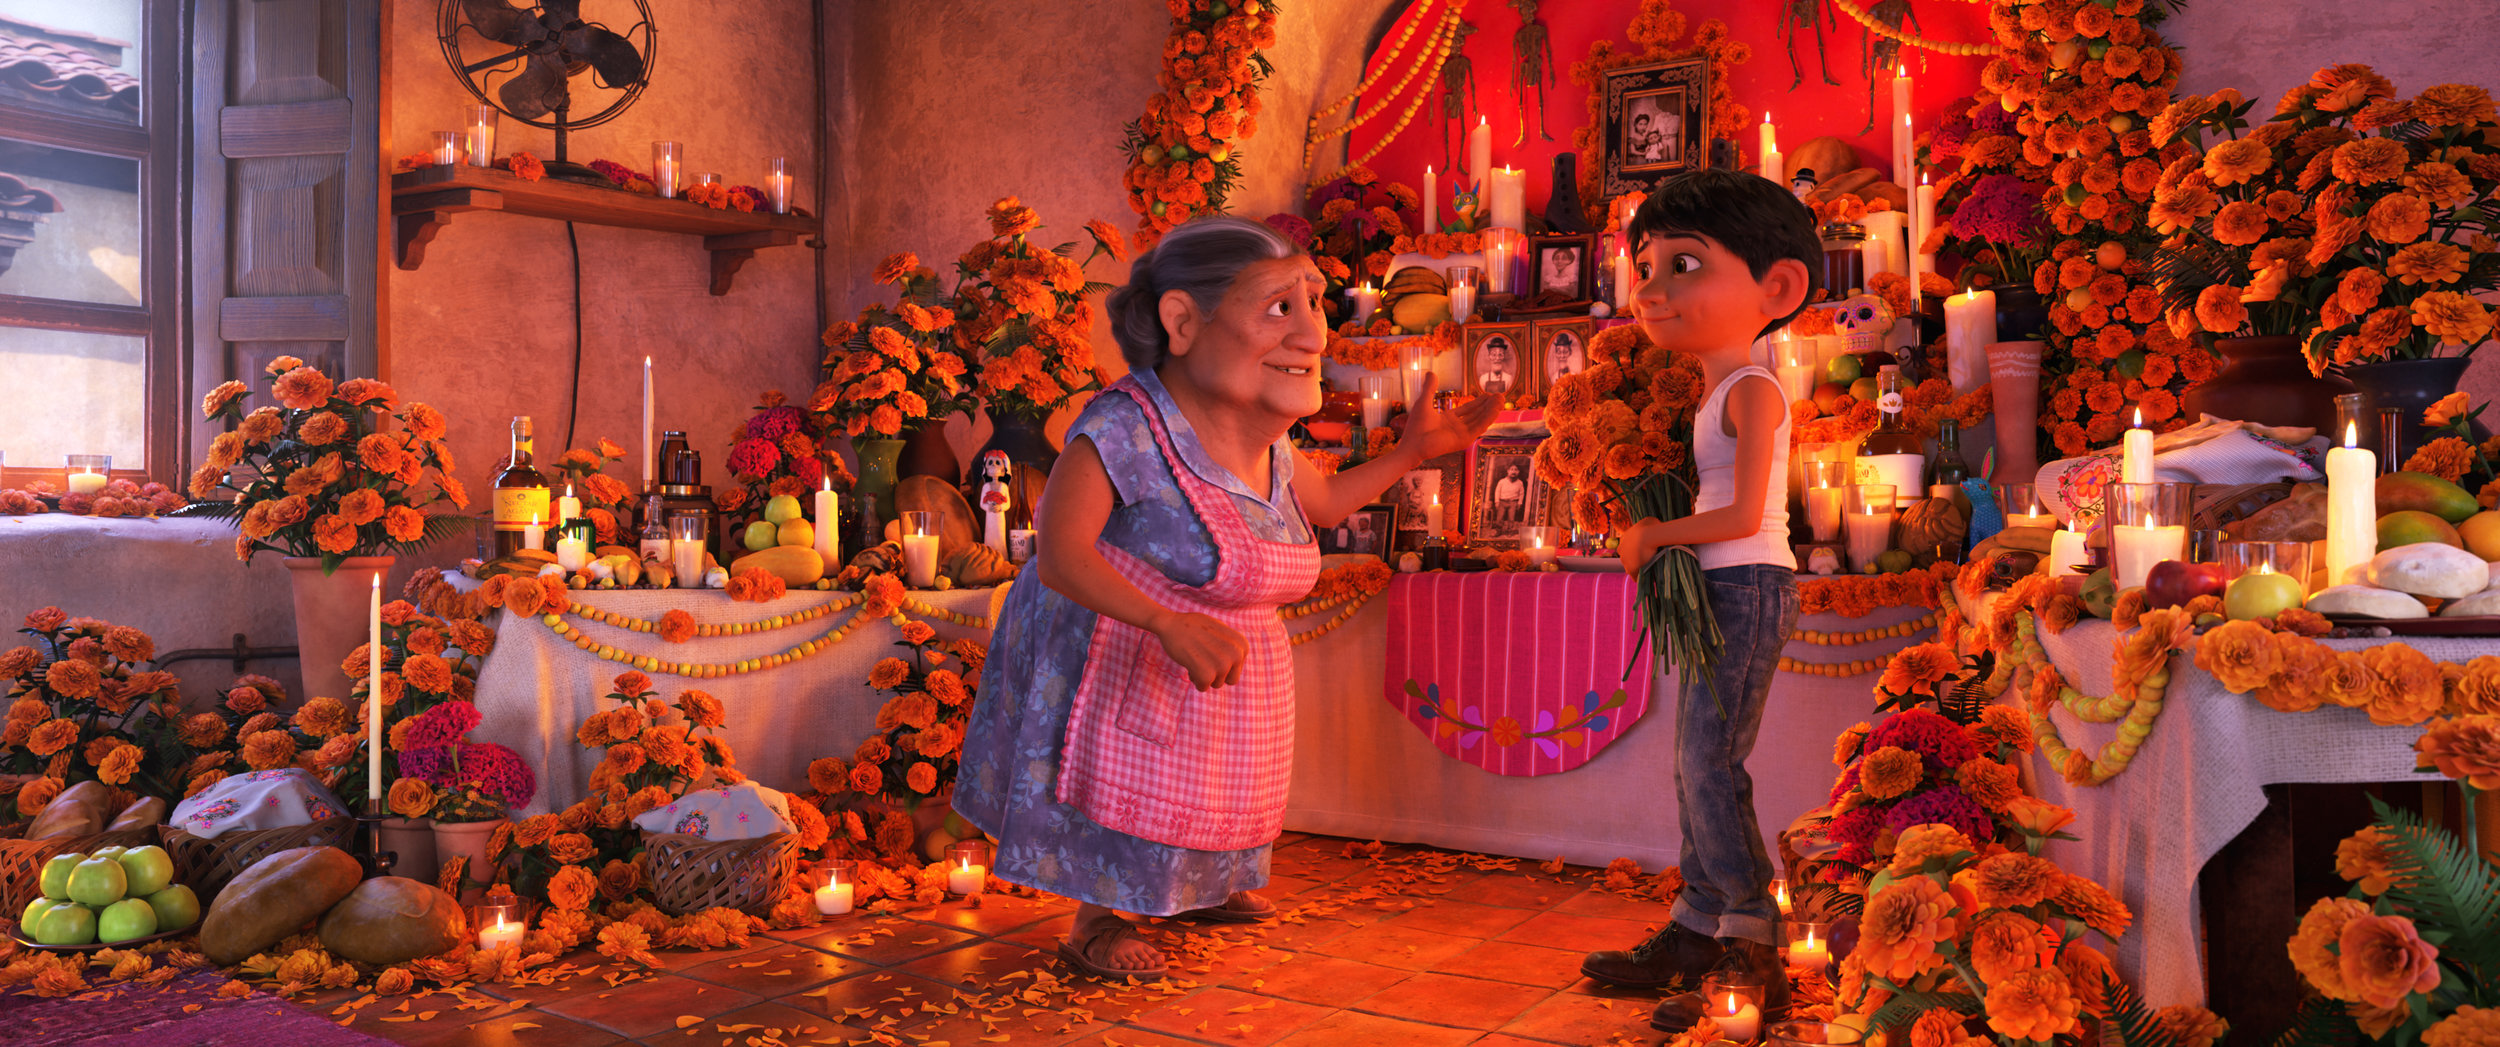 Miguel with his Grandmother at the ofrenda